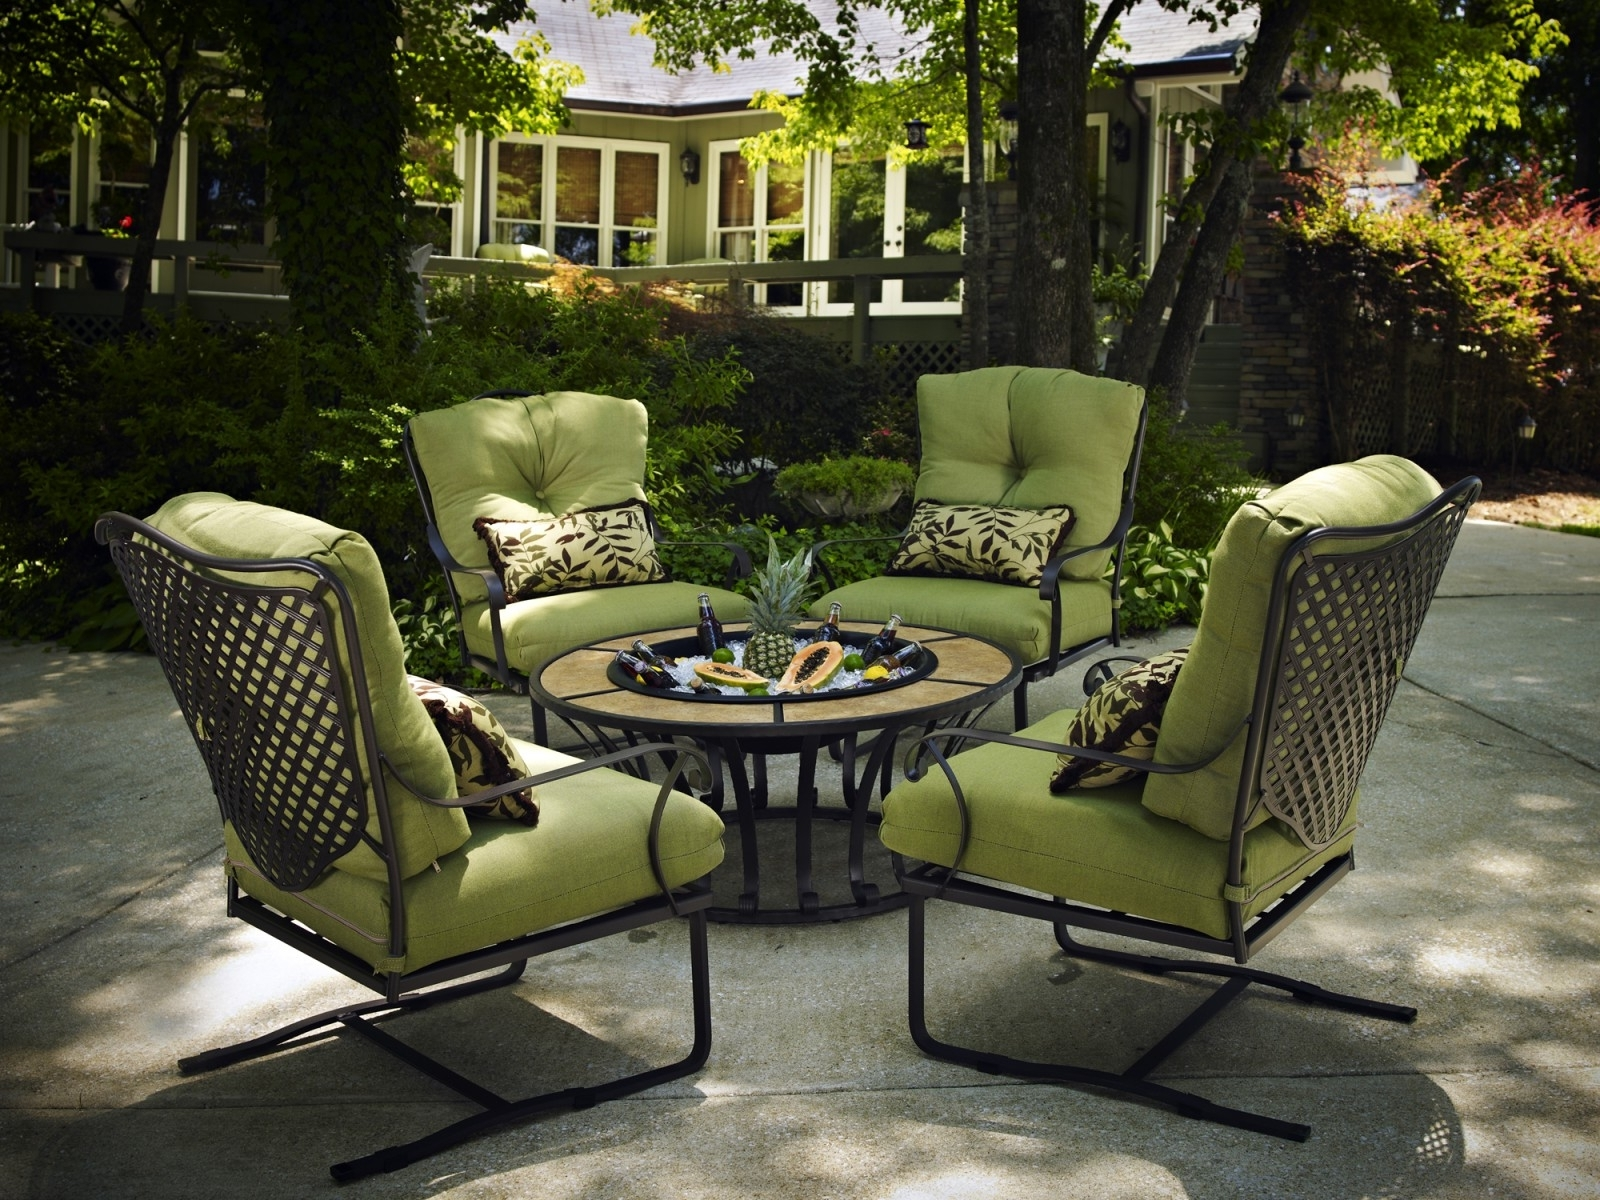 Most Recently Released Patio Conversation Sets With Cushions With Regard To Patio : Wrought Iron Patio Furnitureca Furniture Value Plantation (View 8 of 15)